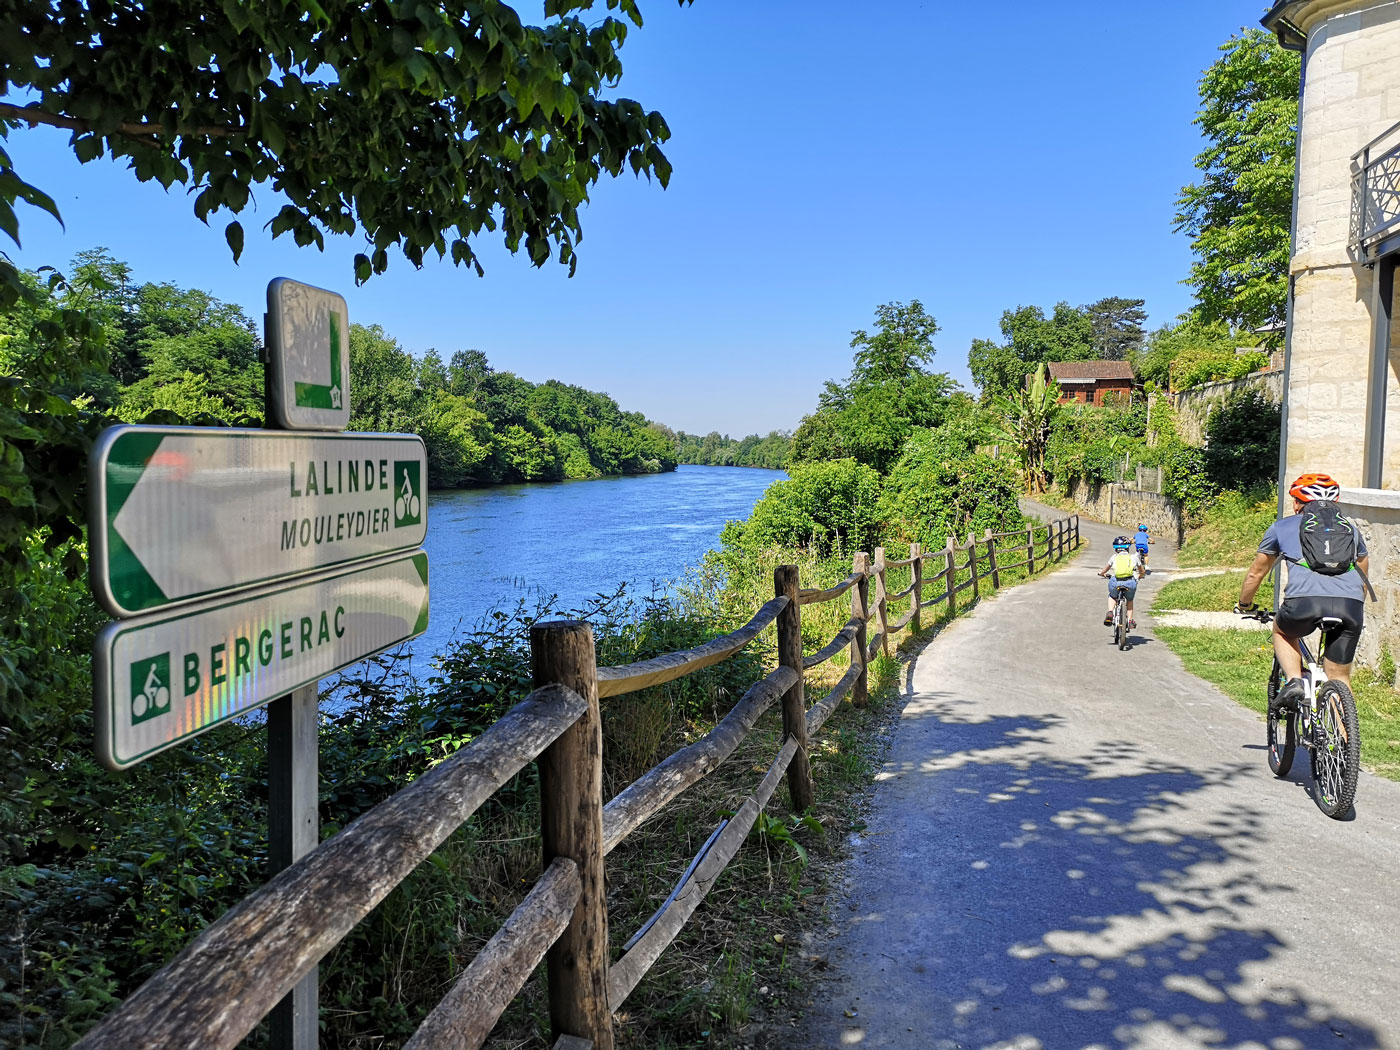 Bergerac Greenway cycle route